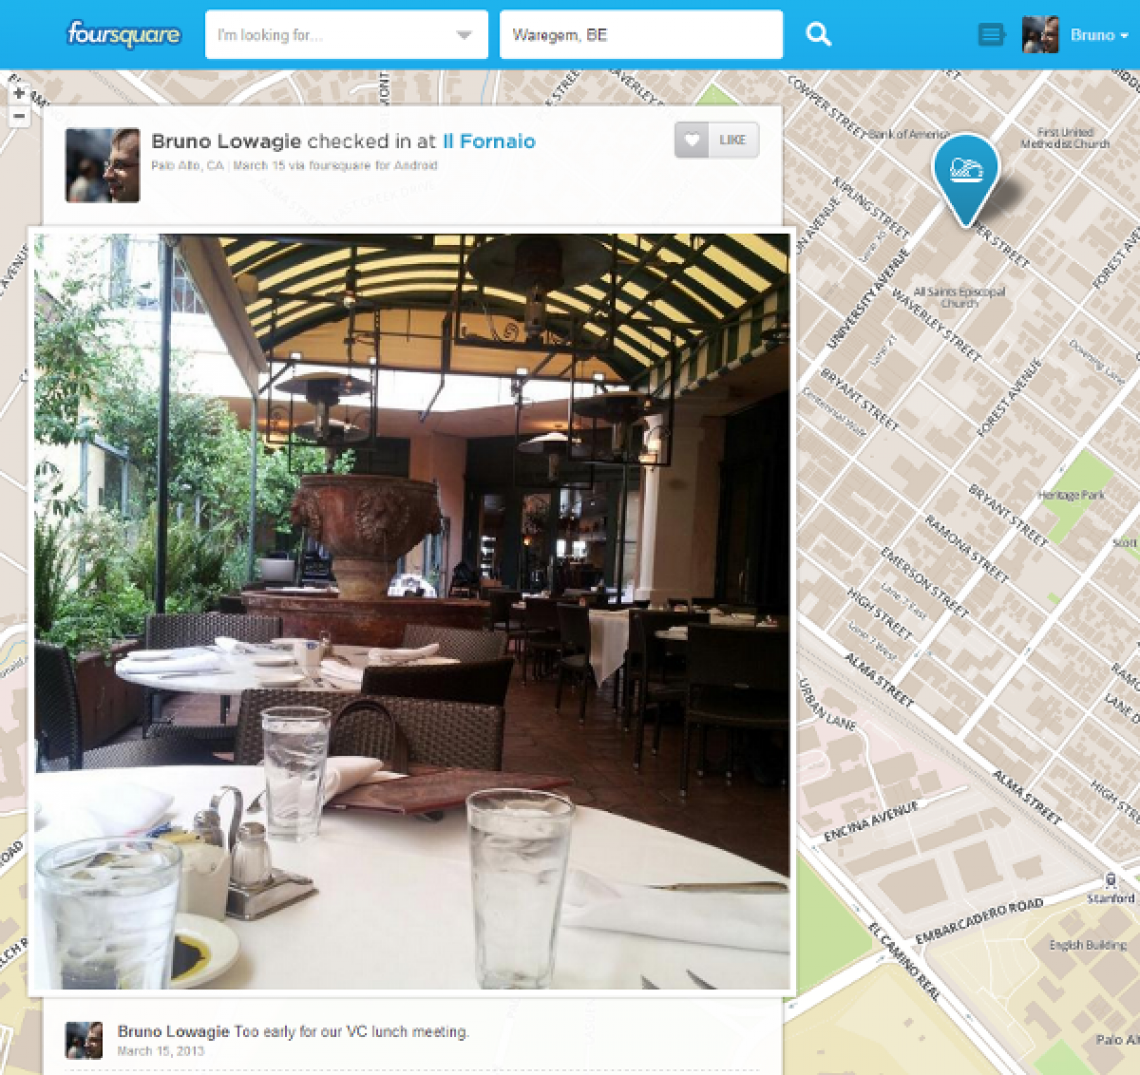 Visit to Il Fornaio, the restaurant where Silicon Valley VCs meet